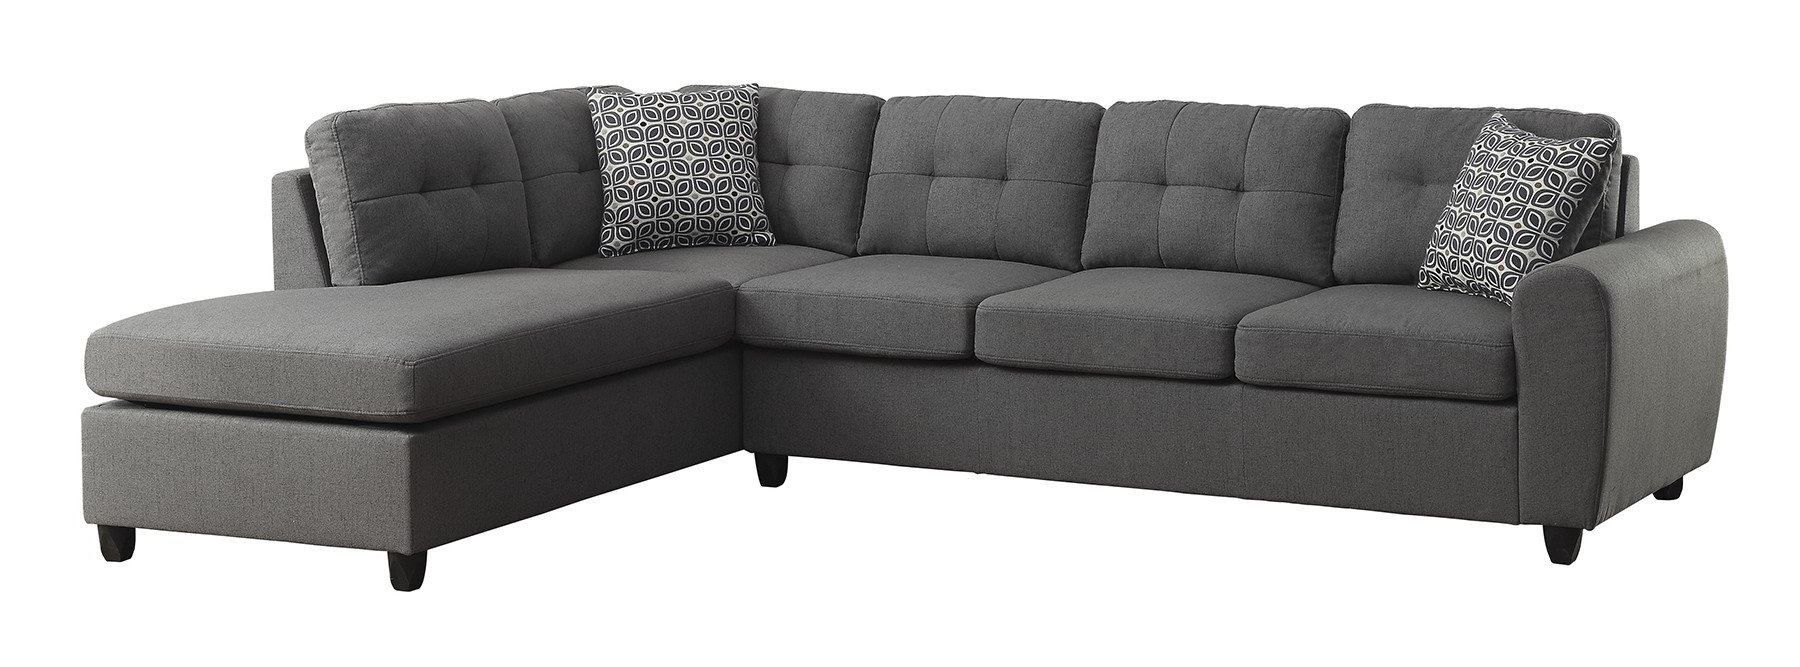 Wayfair Intended For Favorite Everett Wa Sectional Sofas (View 11 of 15)